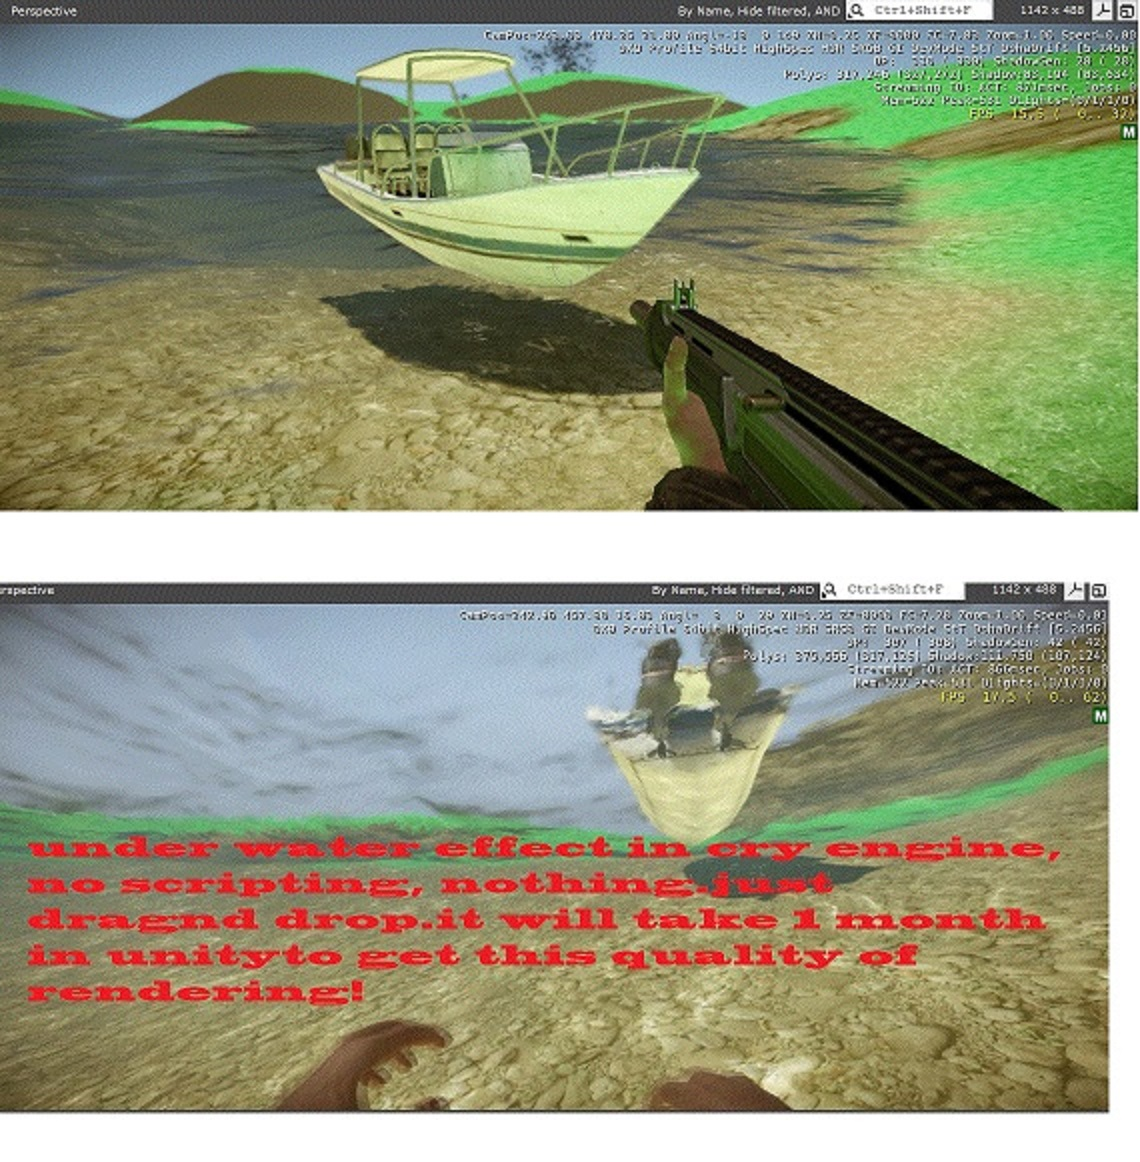 bad graphics, bad performace, is that all what unity is about